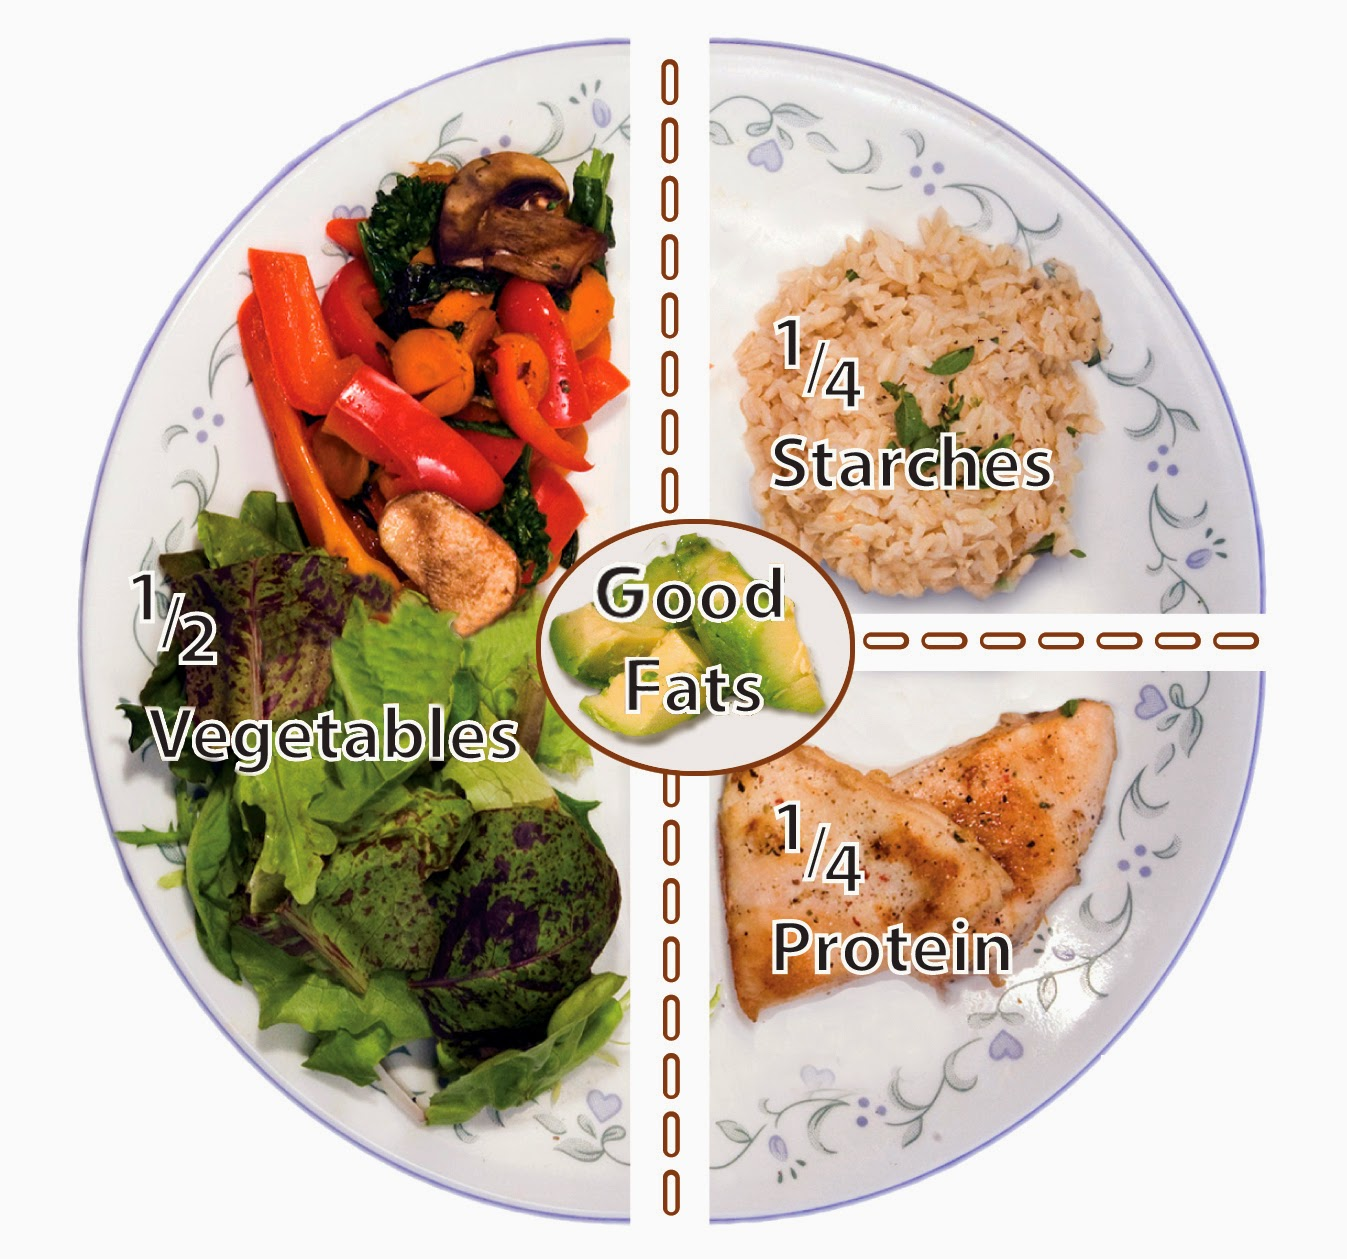 Now not every single meal will do all of these things but I believe its a great way to think about your food and how it nourishes you.  sc 1 st  Lean Green and Healthy & Lean Green and Healthy: What does a balanced meal look like?